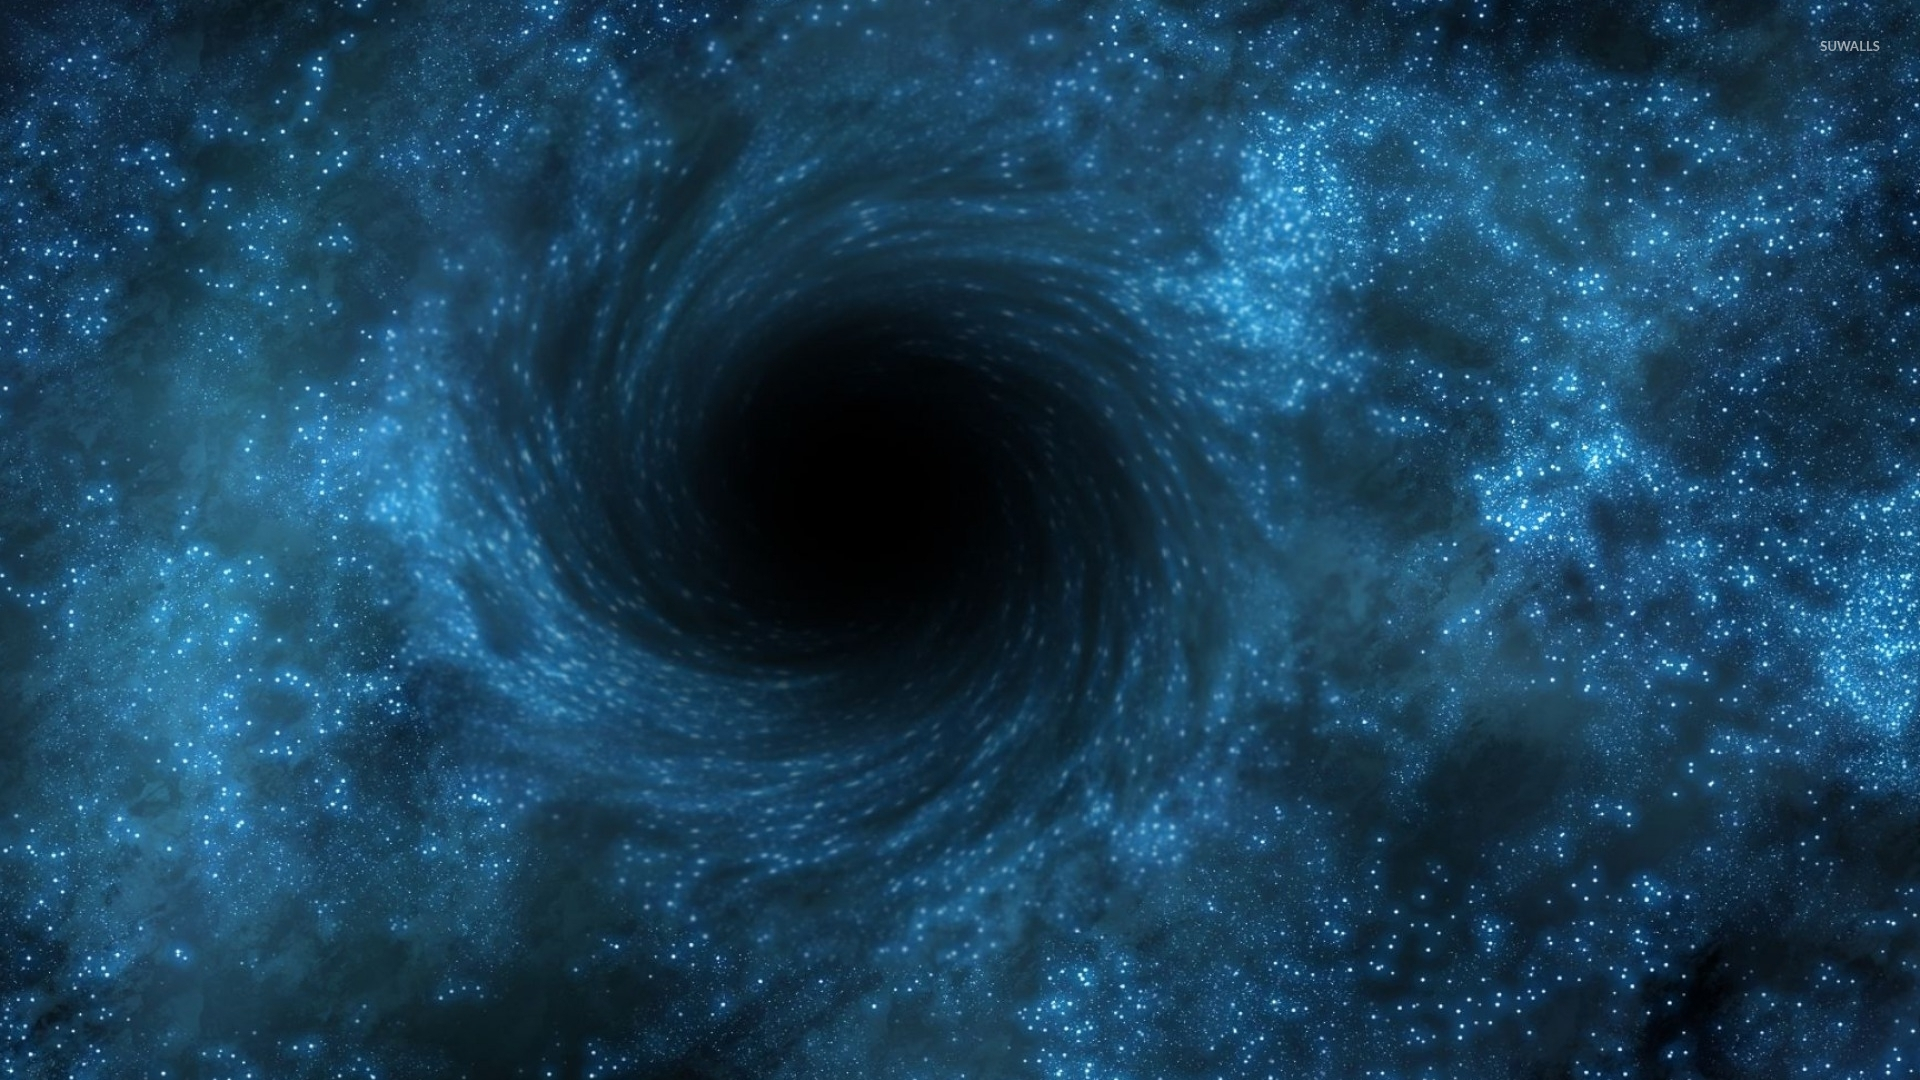 black hole 6 wallpaper space wallpapers 33895